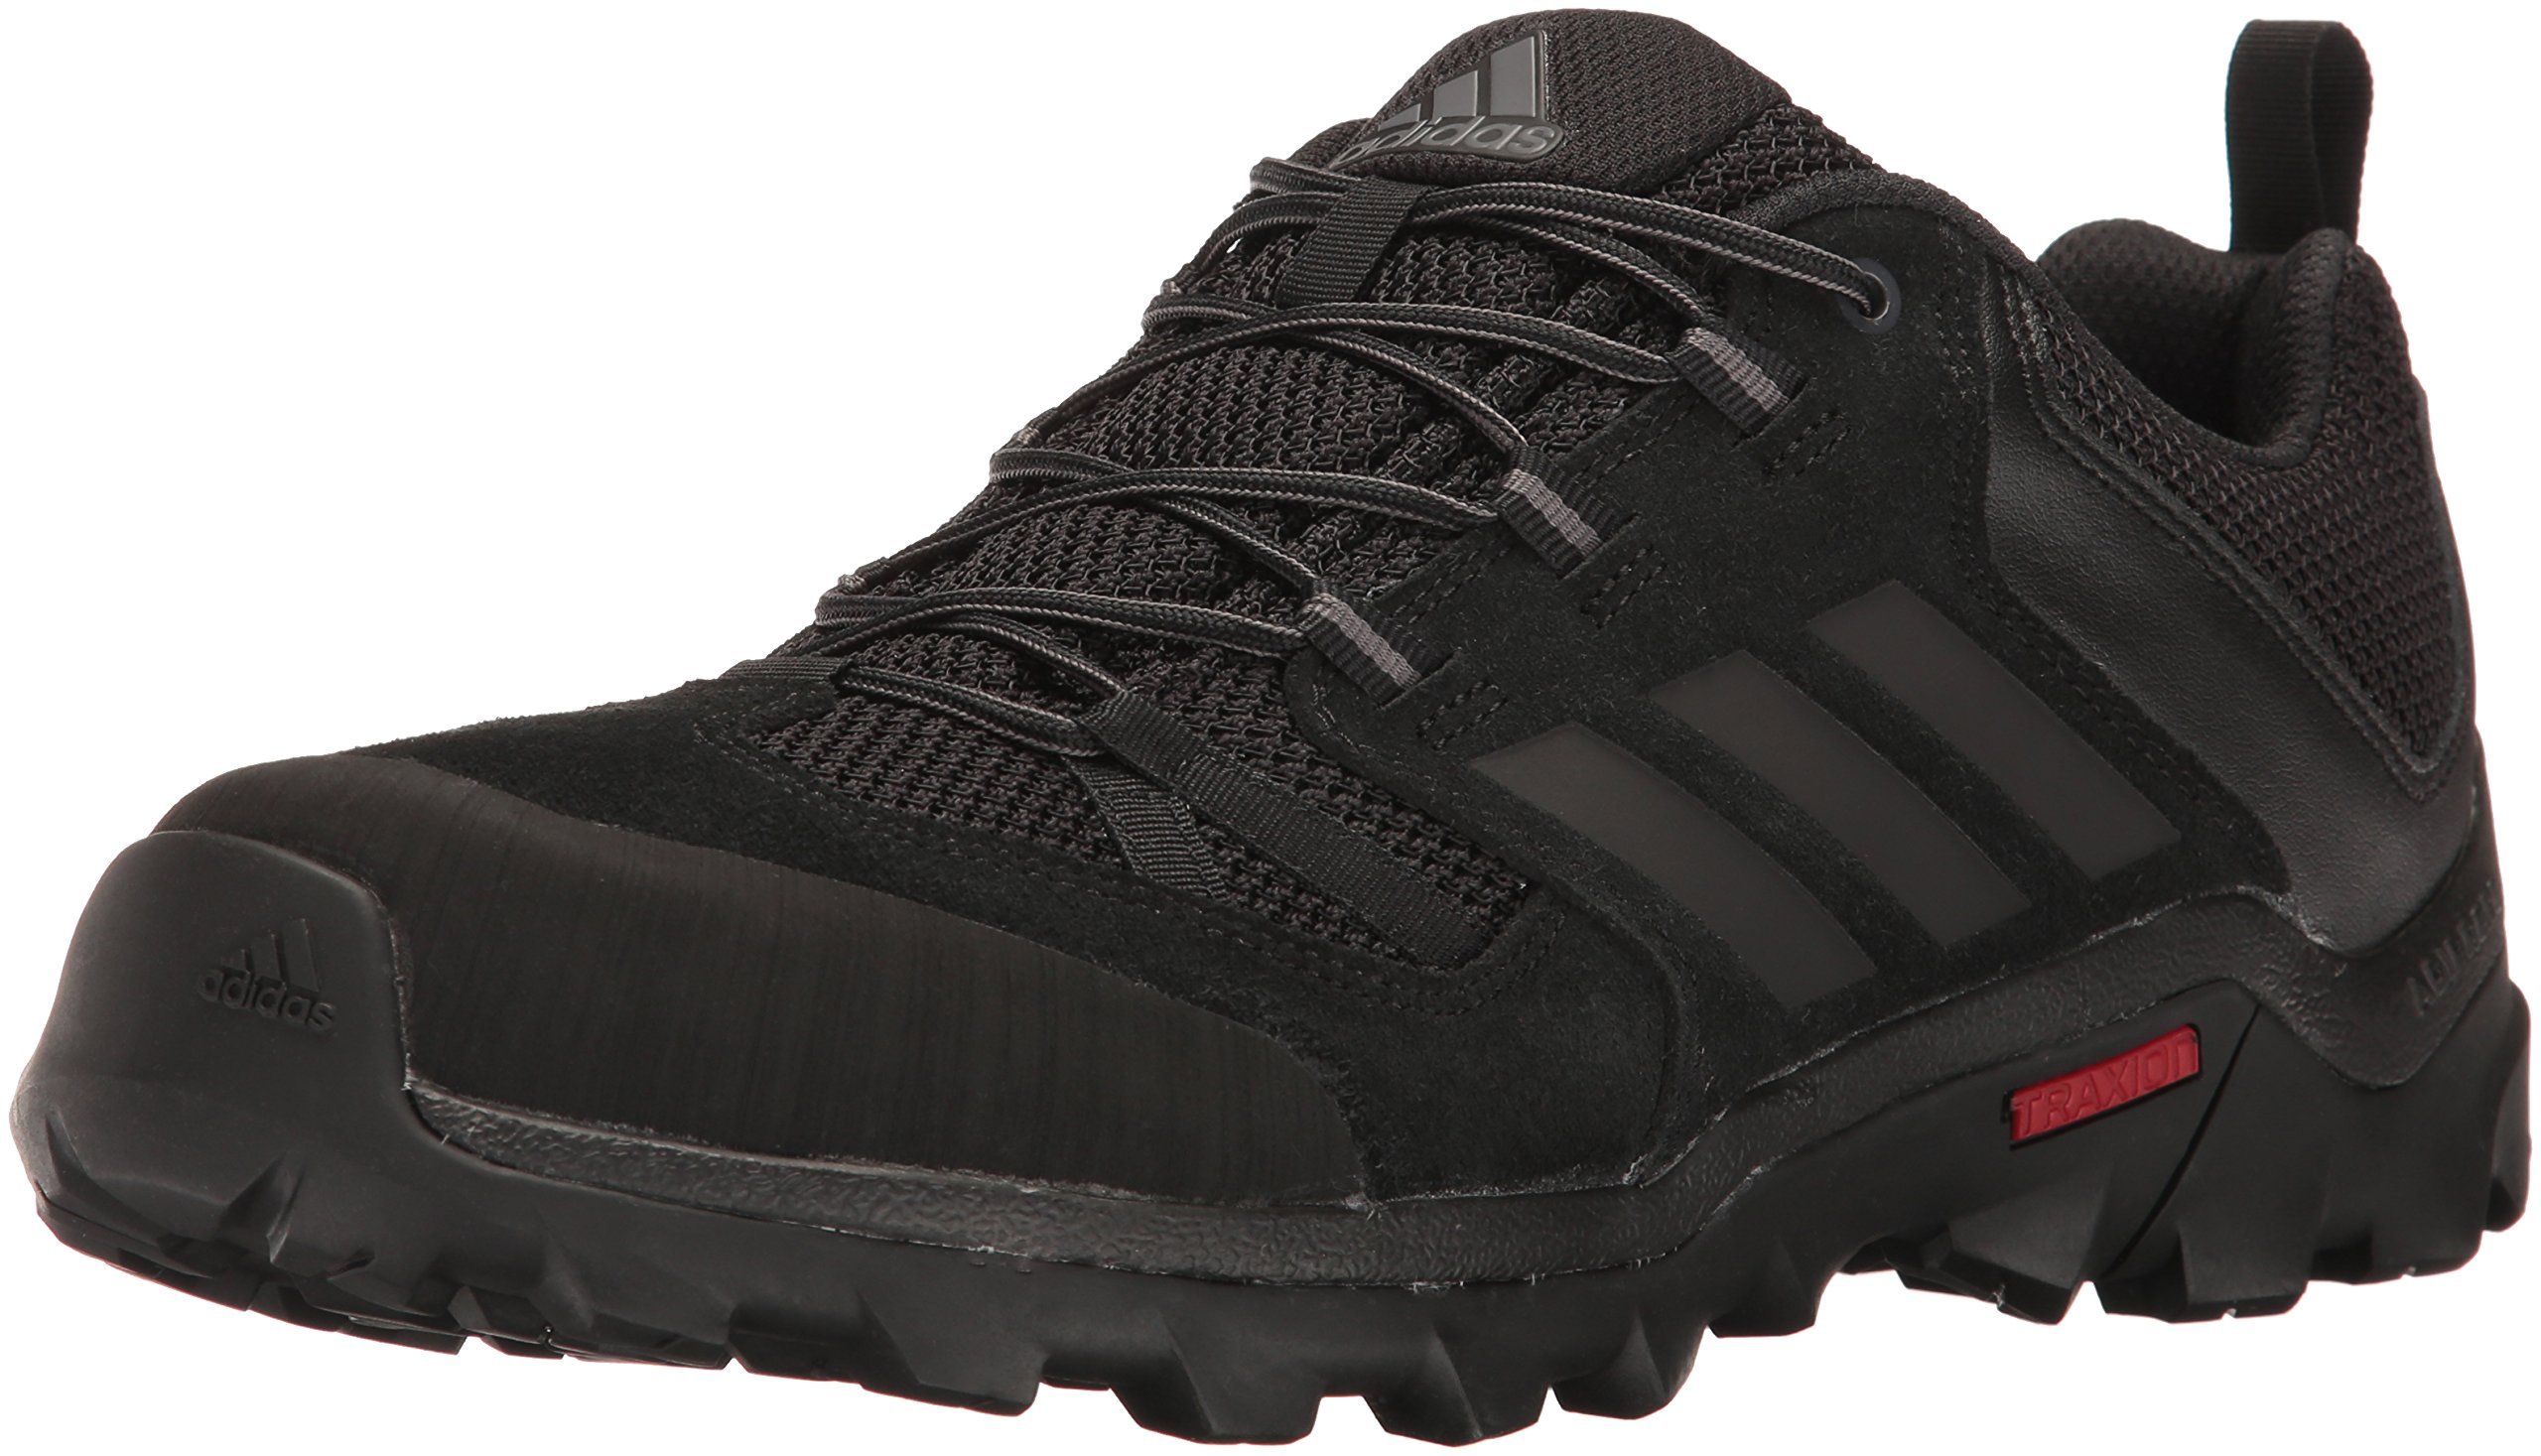 adidas outdoor Men's Caprock Hiking Shoe, Black/Granite/Night Met, 10.5 M US by adidas outdoor